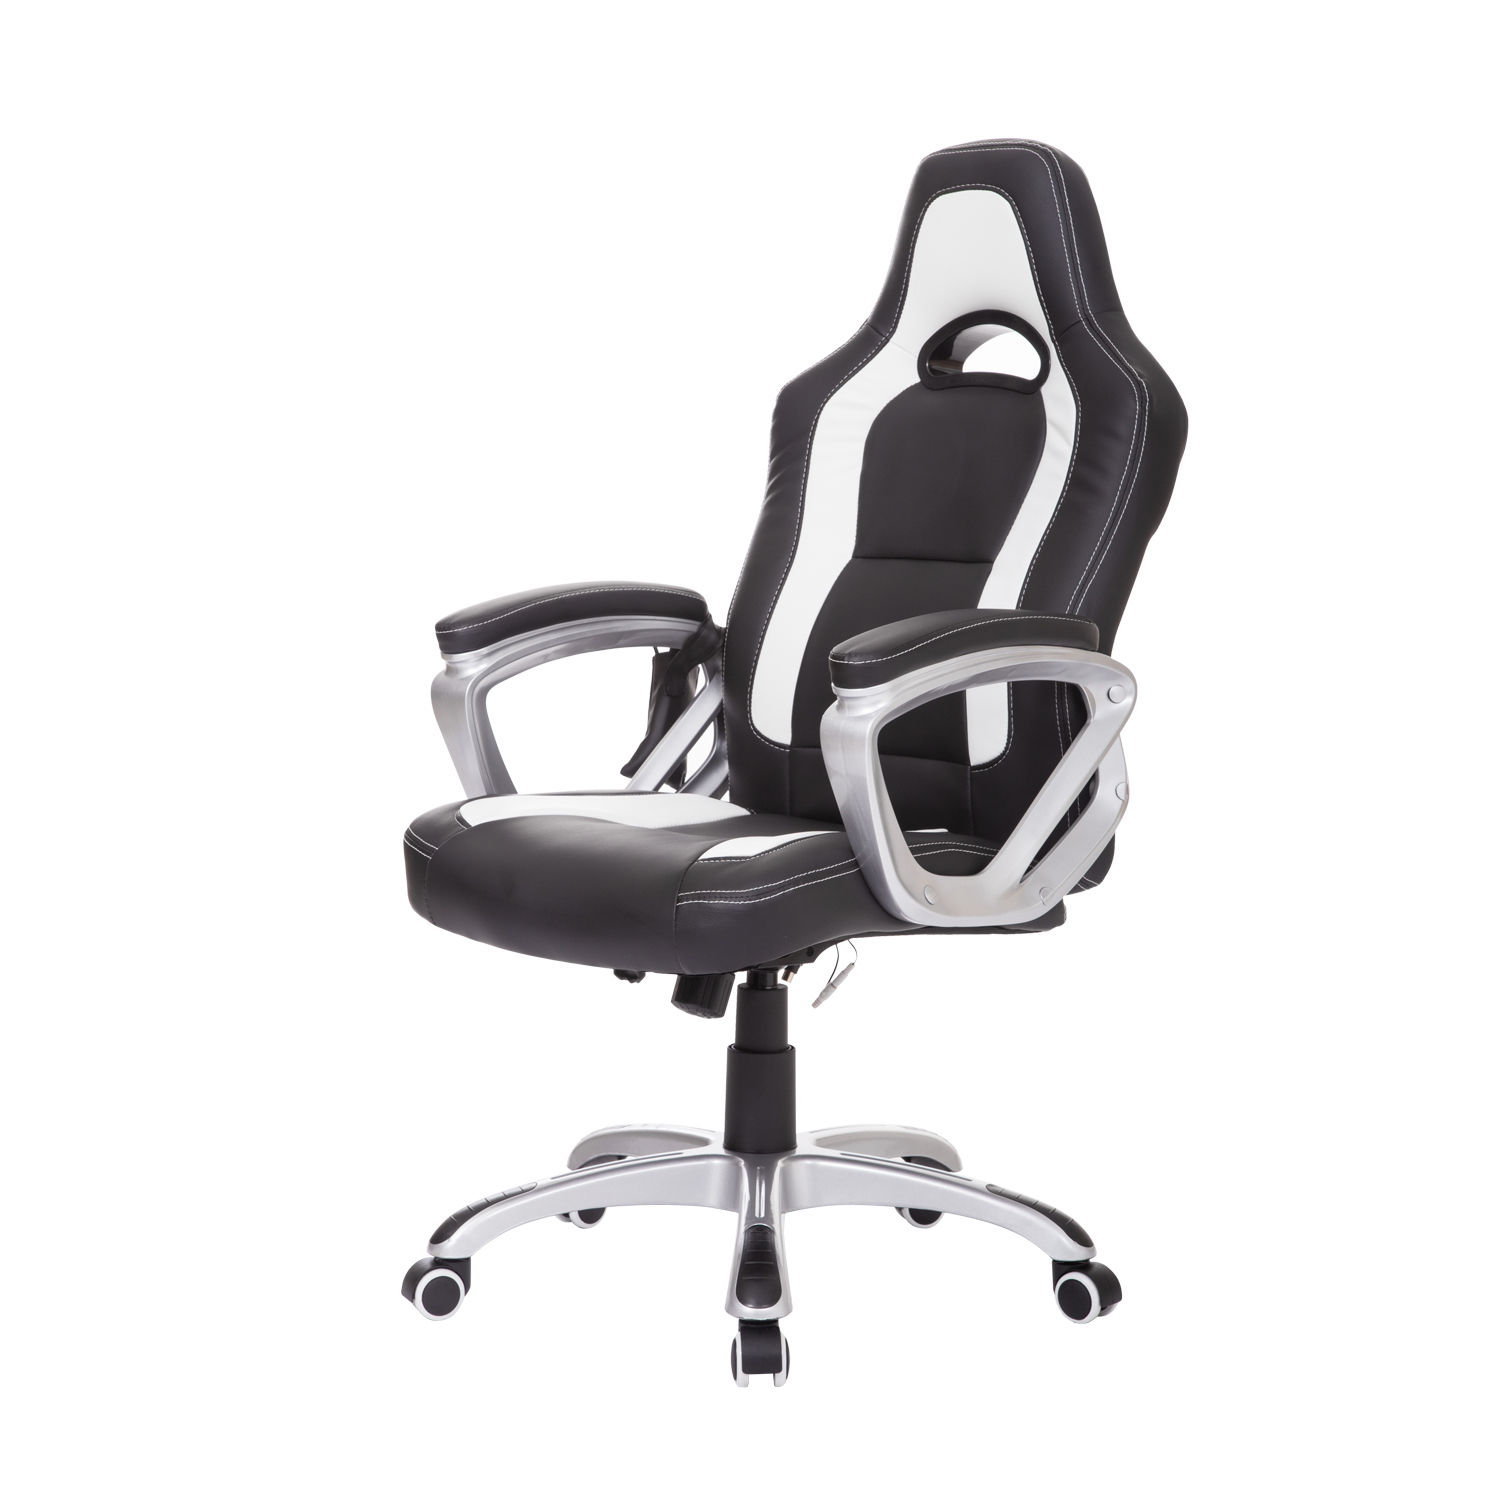 Heated Massage Office Chair Homcom Race Car Style Pu Leather Heated Massaging Office